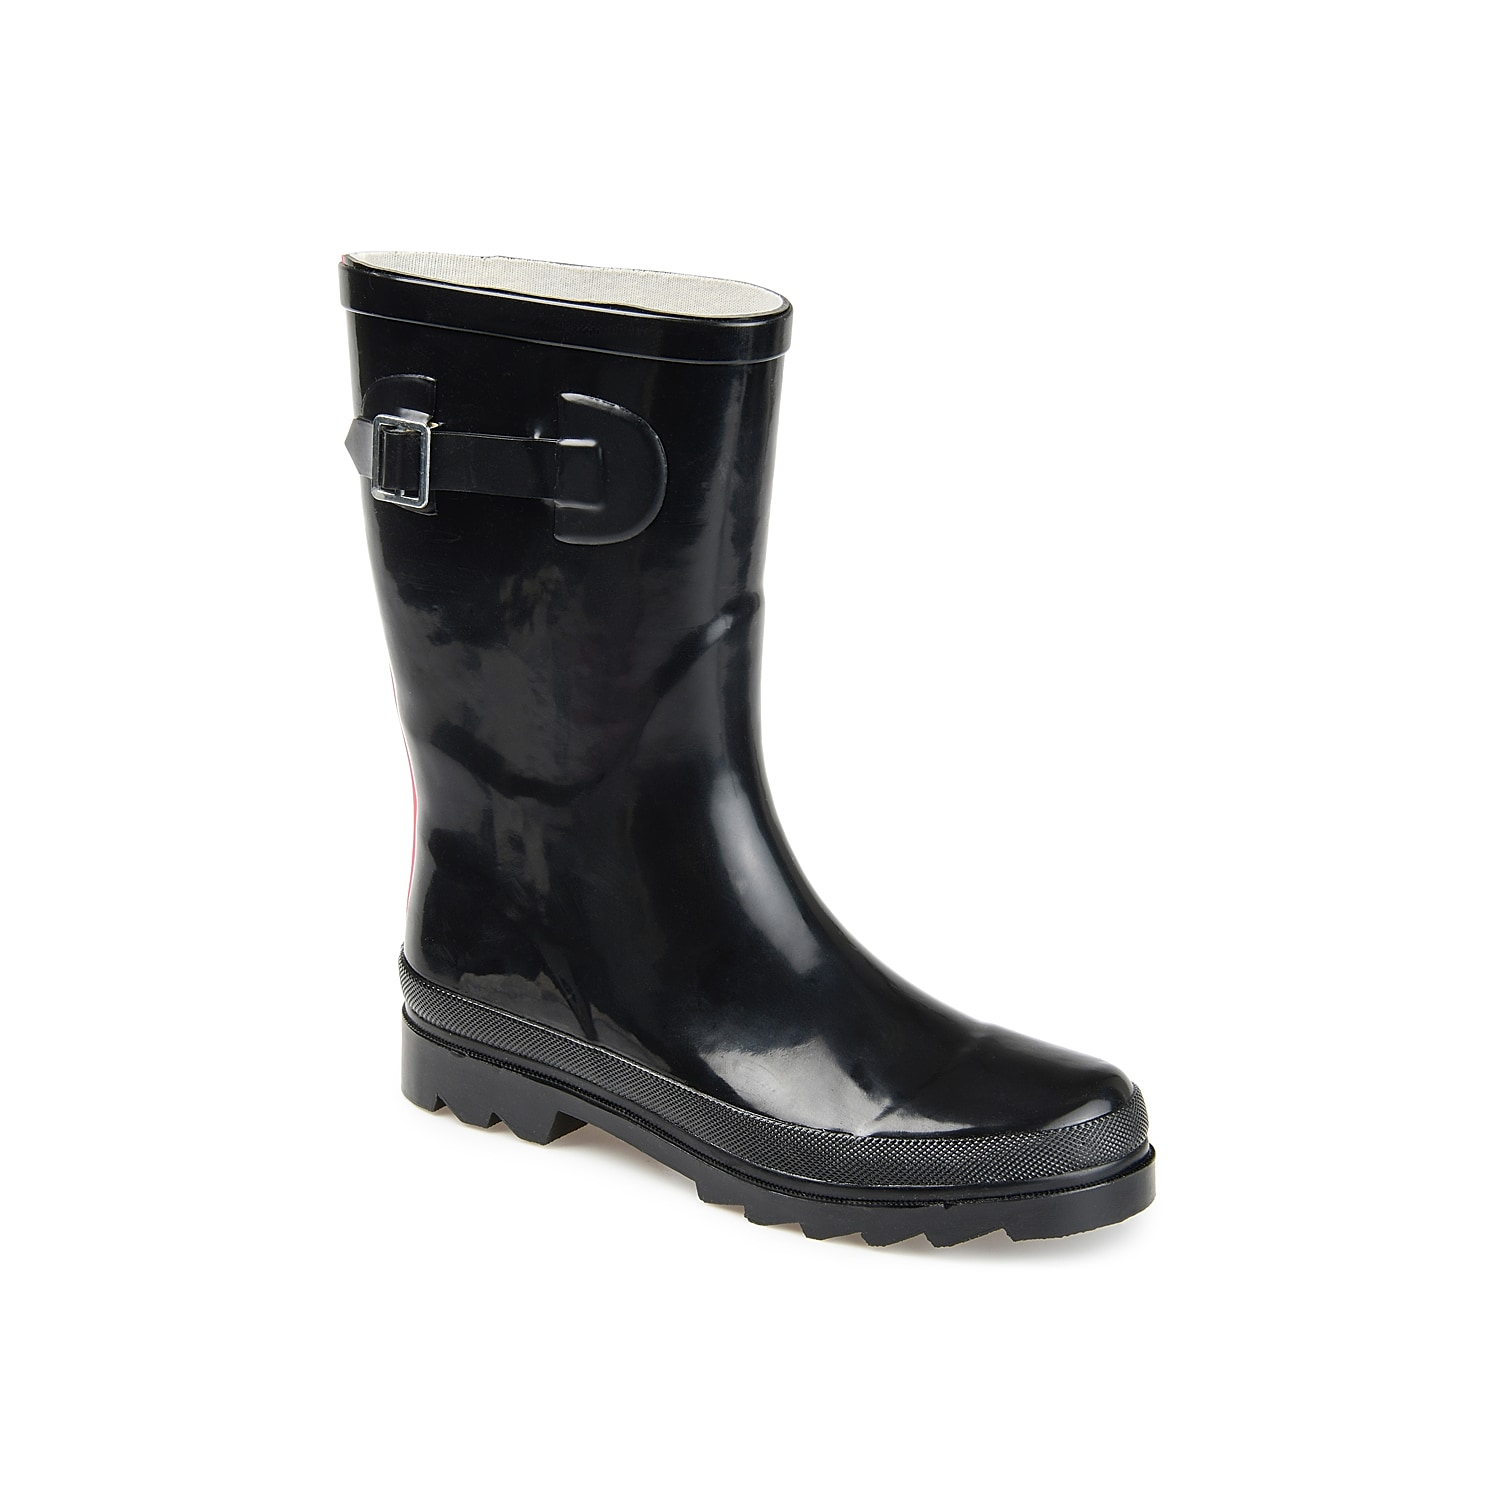 Don\\\'t be afraid to splash around in the Seattle rain boot from Journee Collection. This waterproof pair features a bold design to brighten up gloomy days.Click here for Boot Measuring Guide.